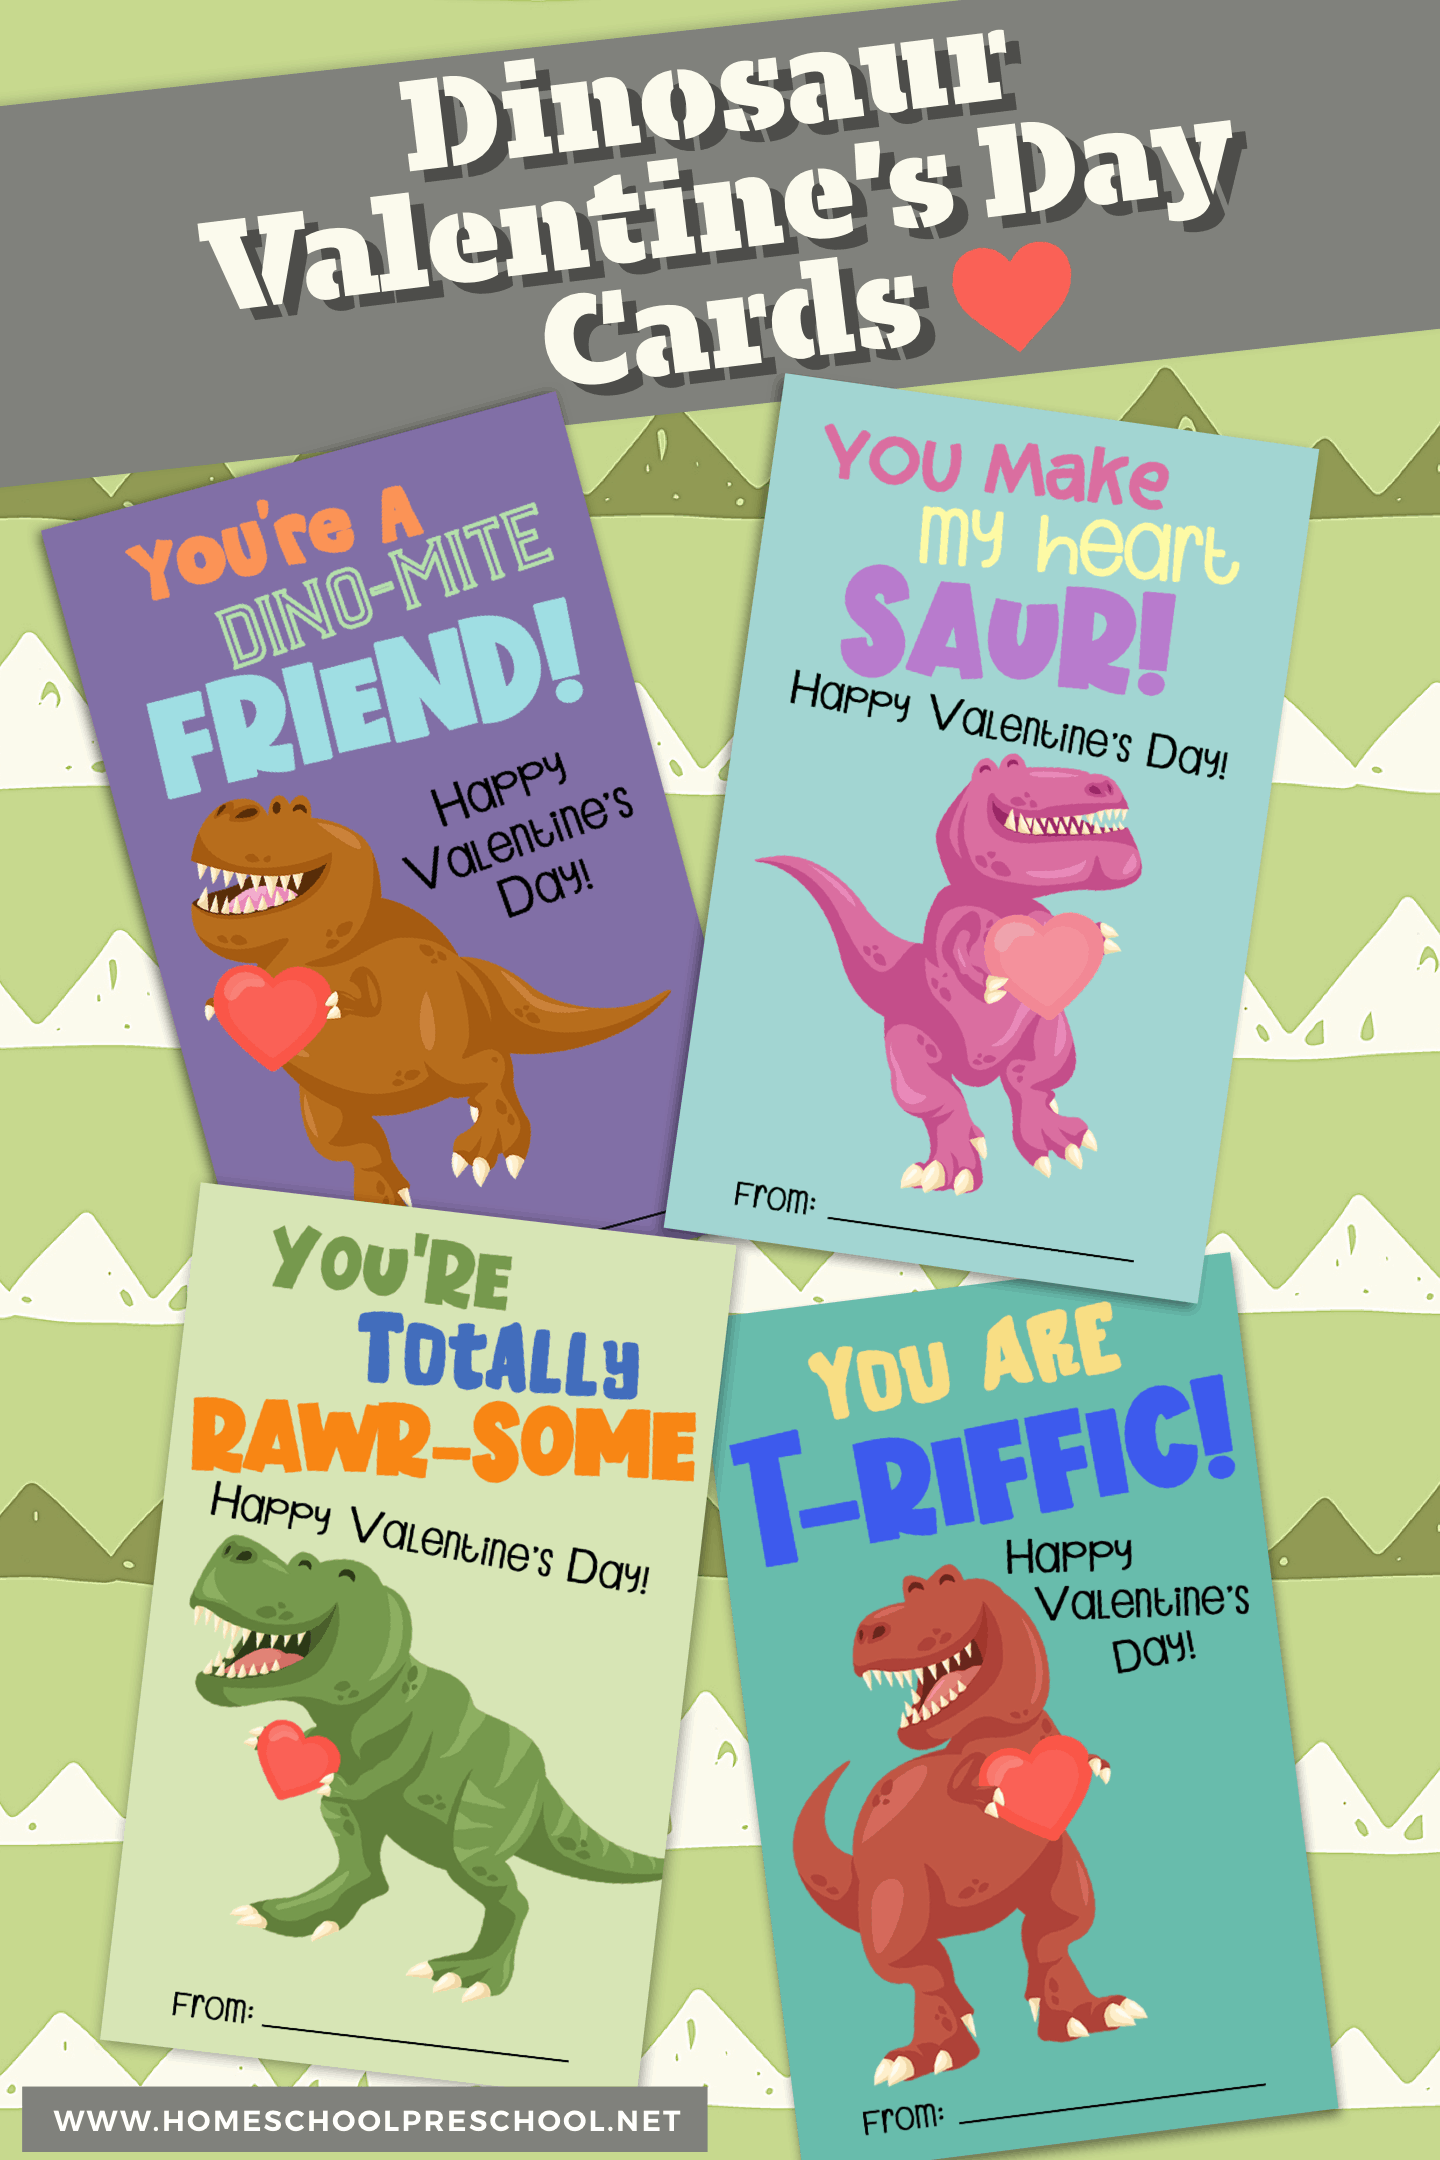 Download these dinosaur printable Valentine cards! These gender neutral cards are perfect for boys and girls to pass out this Valentine's Day.